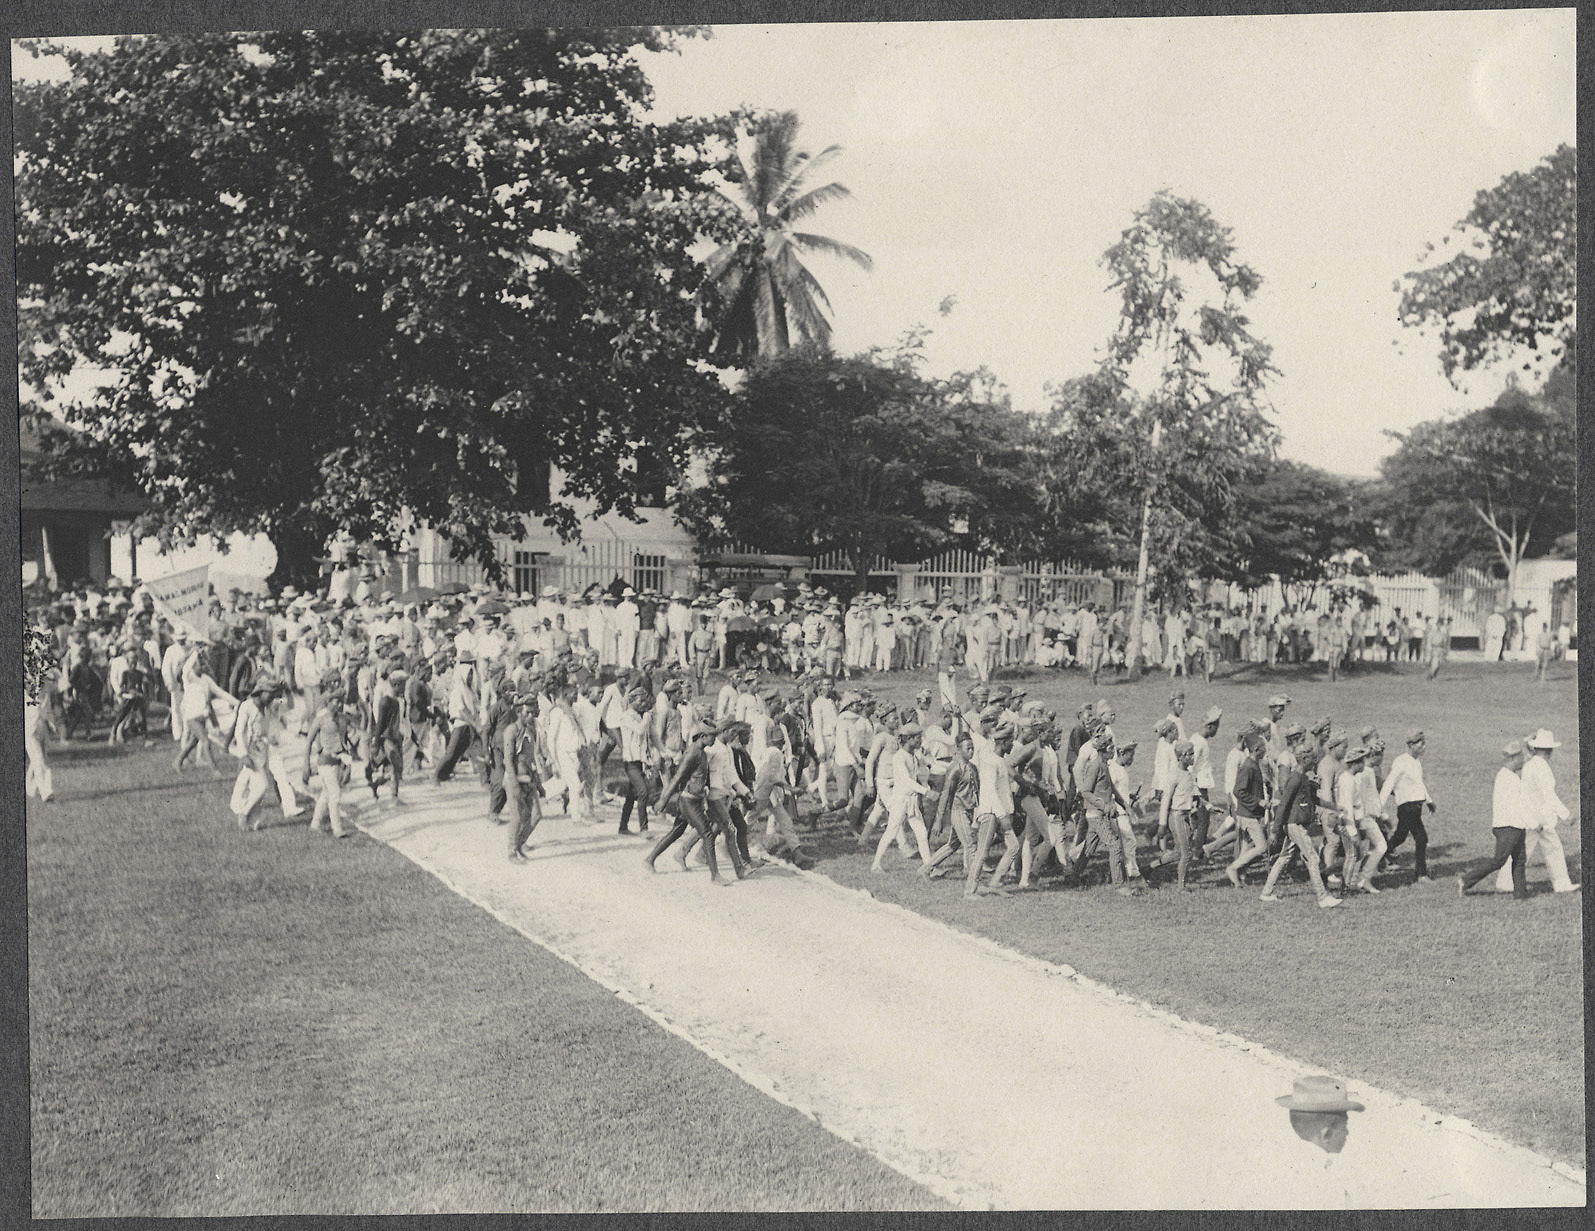 Zamboanga: Moros crossing the Zamboanga parade grounds